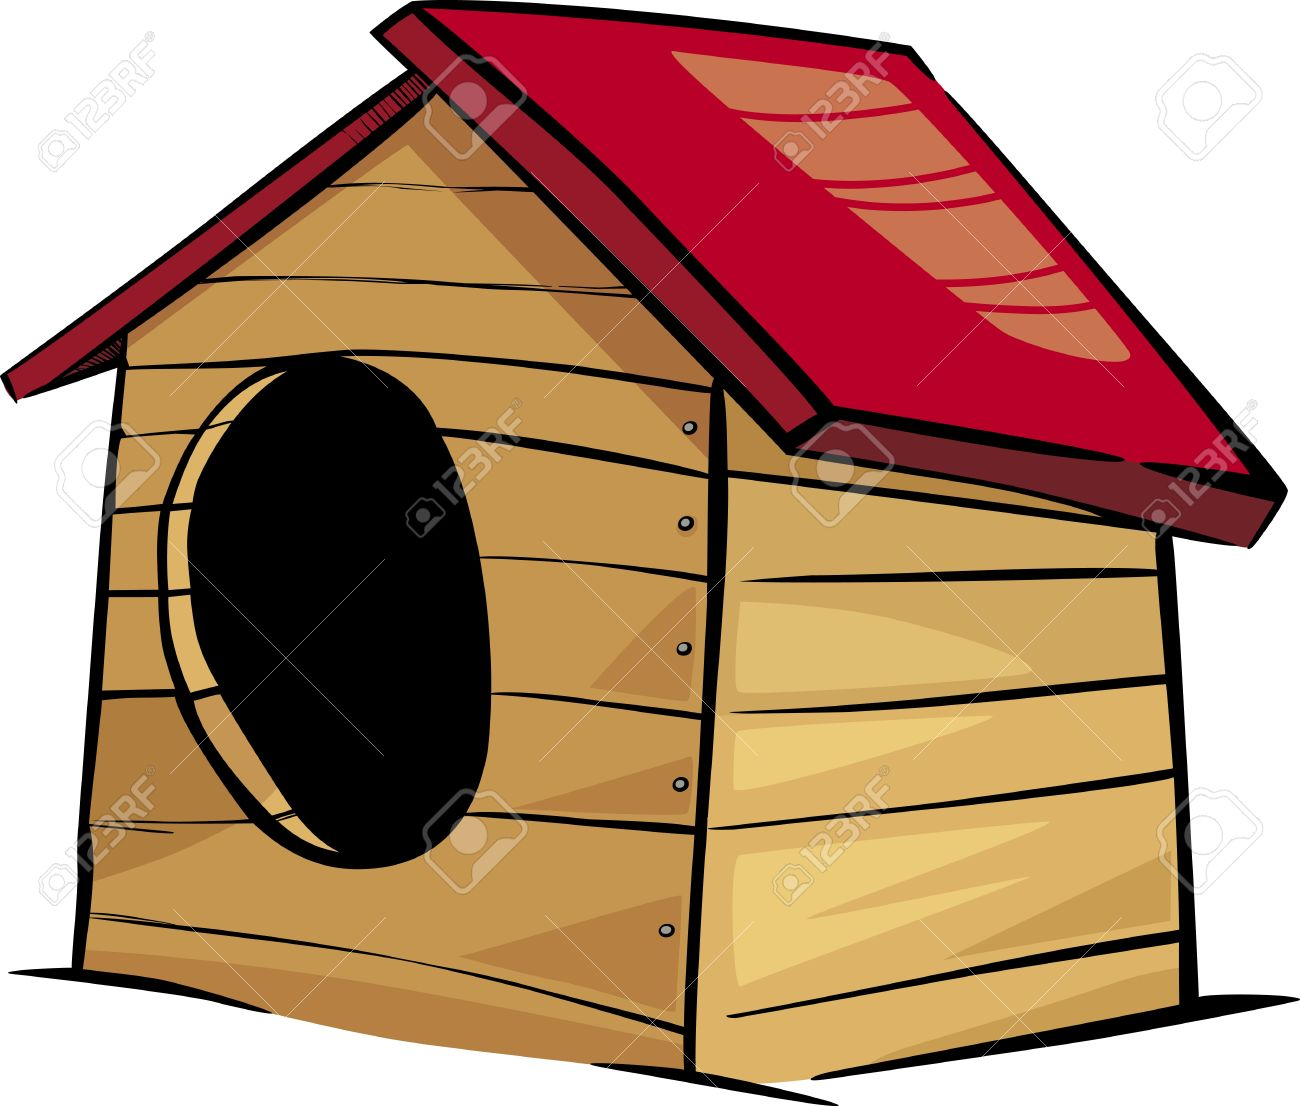 Cartoon Illustration Von Doghouse Oder Zwinger Clip Art Lizenzfrei.